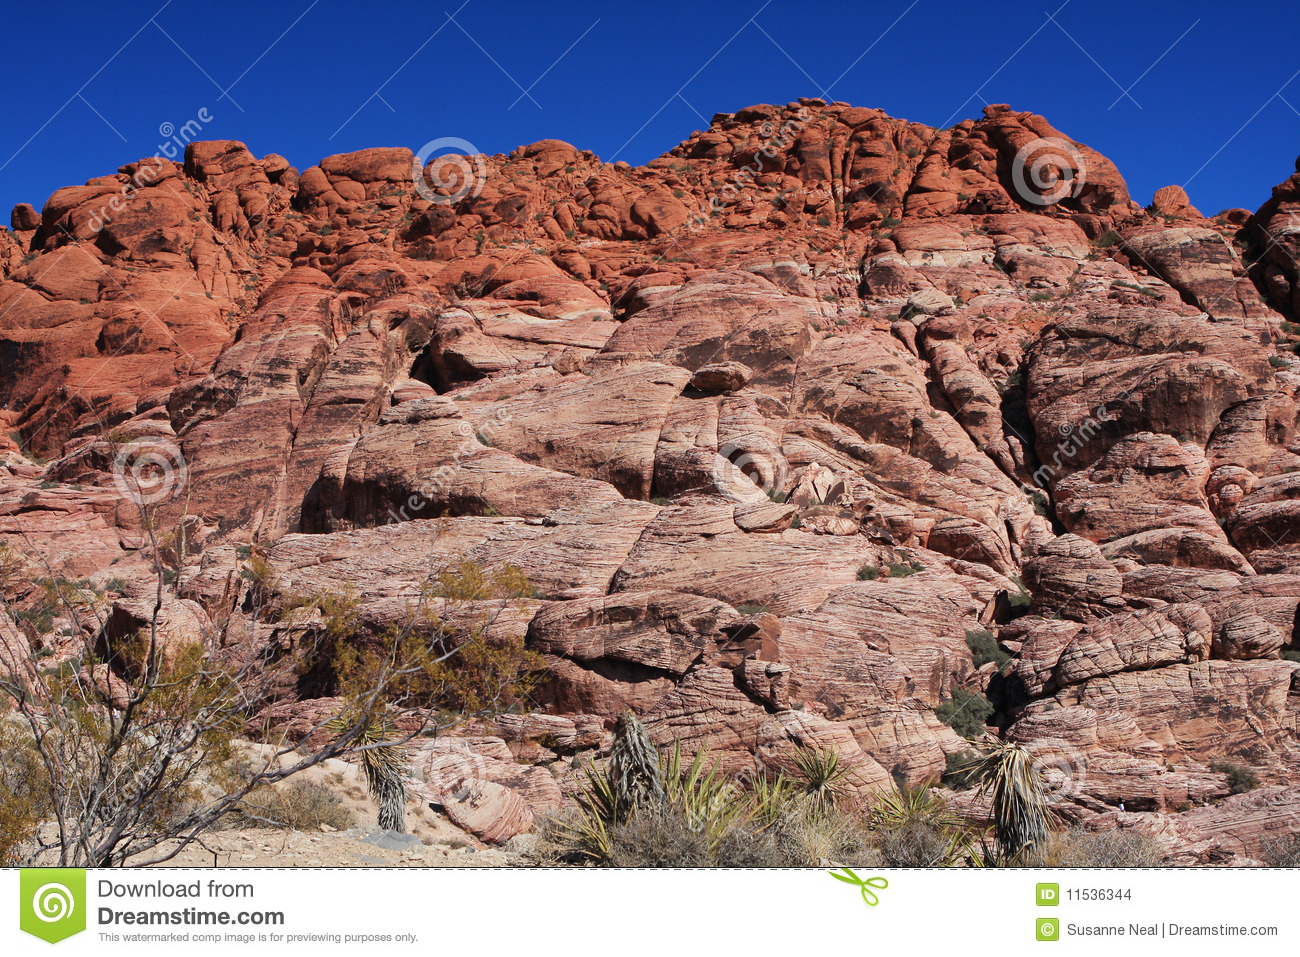 how to get to the colorful rocks in vegas